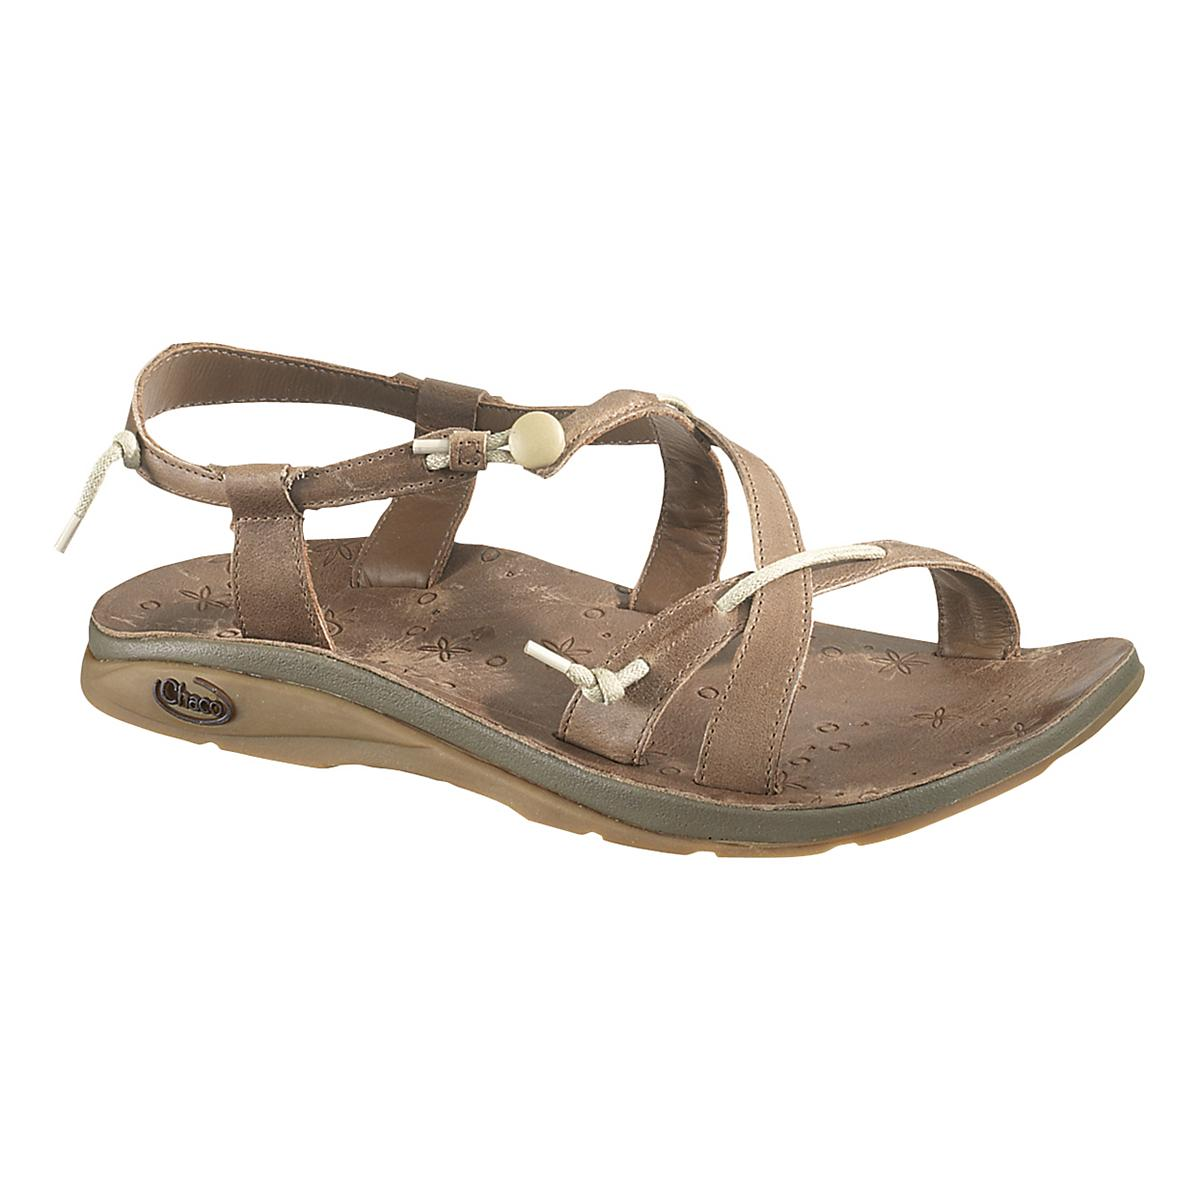 400c22d0b4f5 Womens Chaco Local EcoTread Sandals Shoe at Road Runner Sports